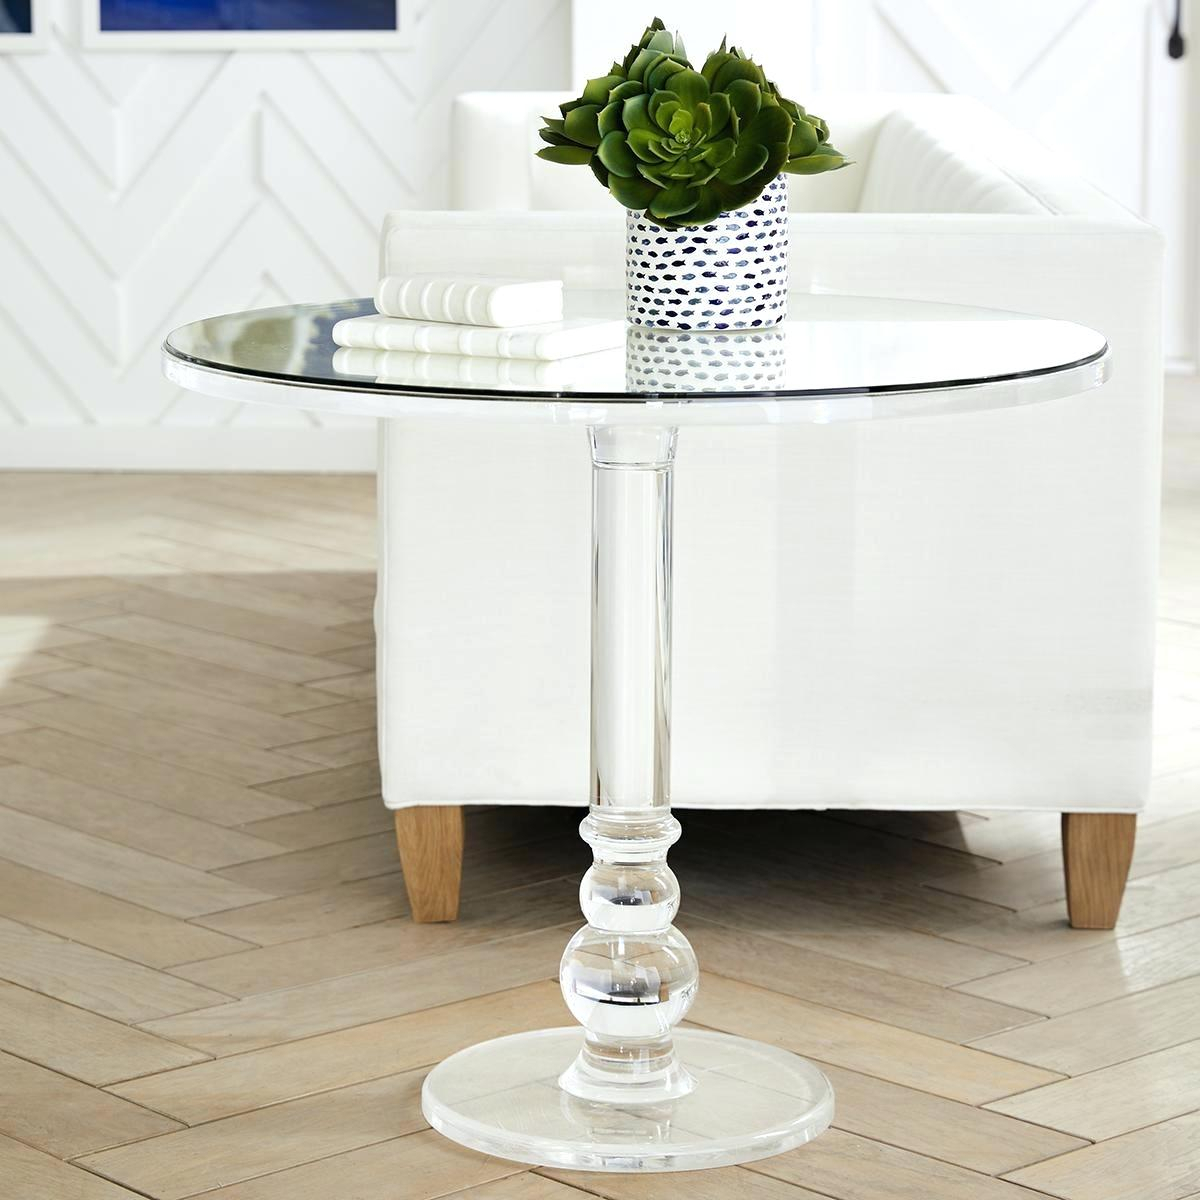 Pedestal Coffee Table With Recent Dawson Pedestal Dining Tables (Image 14 of 25)